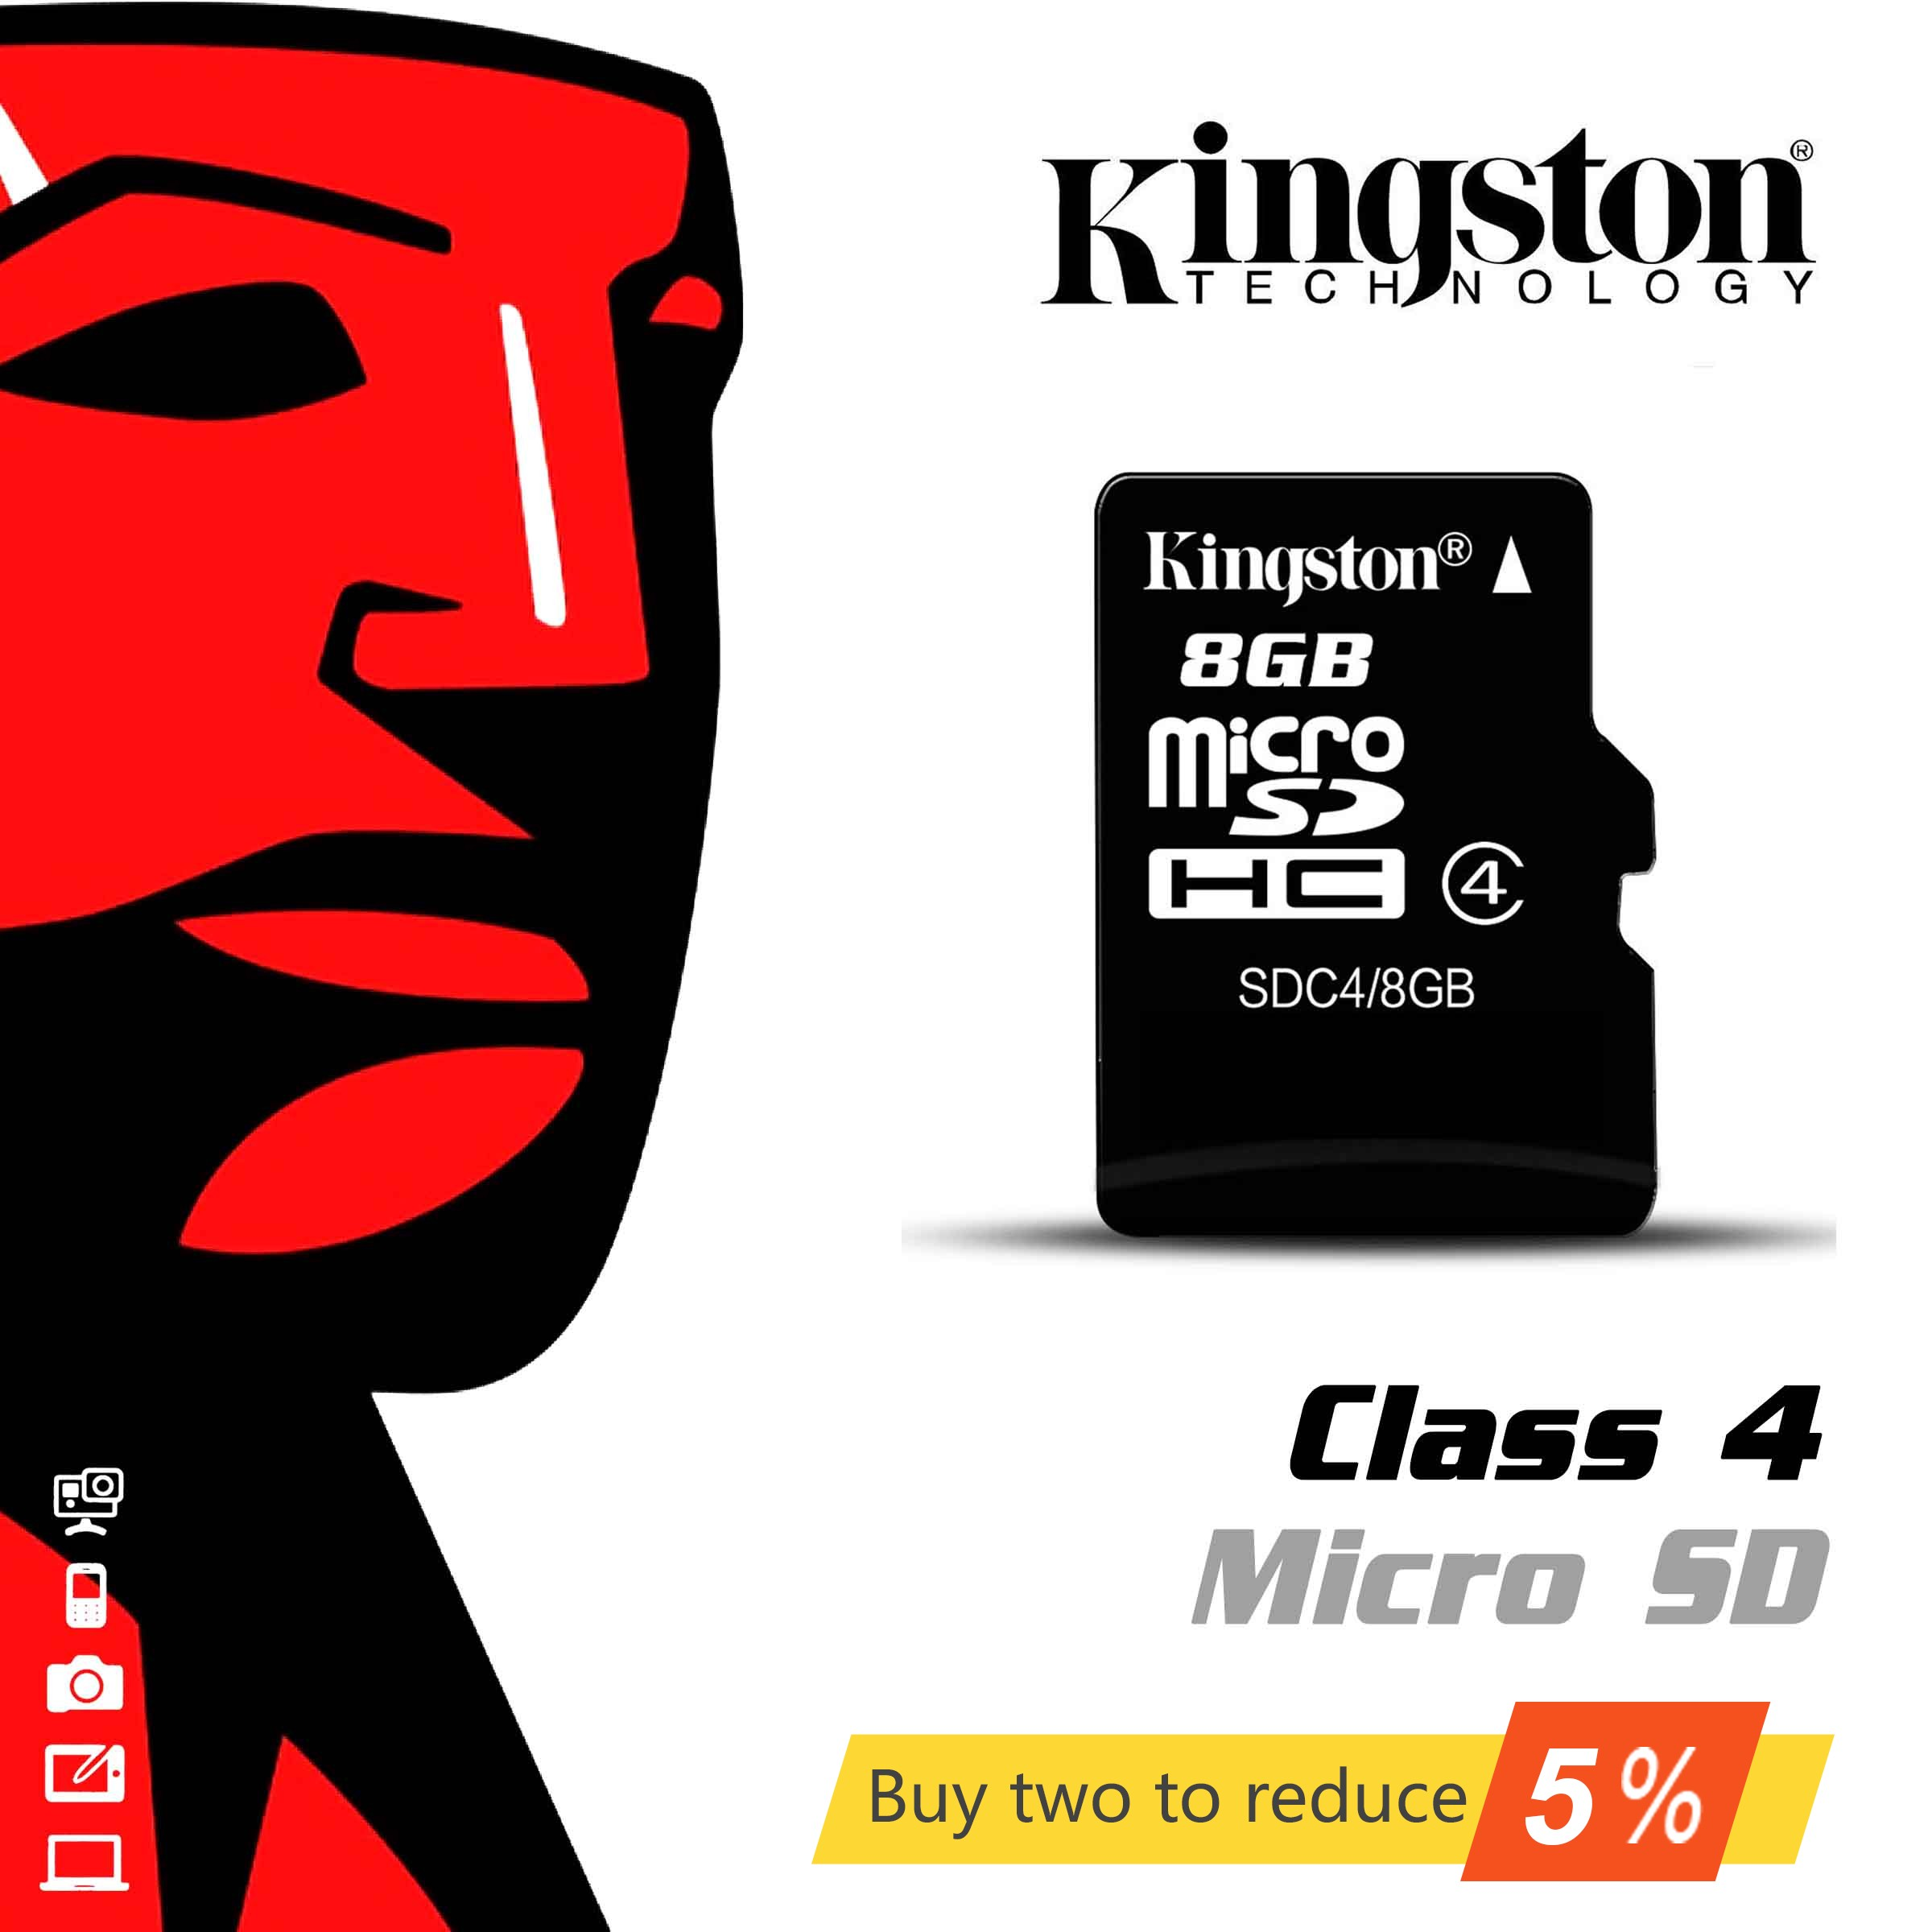 Competent Originele Kingston Microsd-kaart Digitale 8 Gb Klasse 4 C4 Mini Sd-kaart Cartao De Memoria Kaart Uhs-i Sdhc Flash Kaart Voor Smartphone